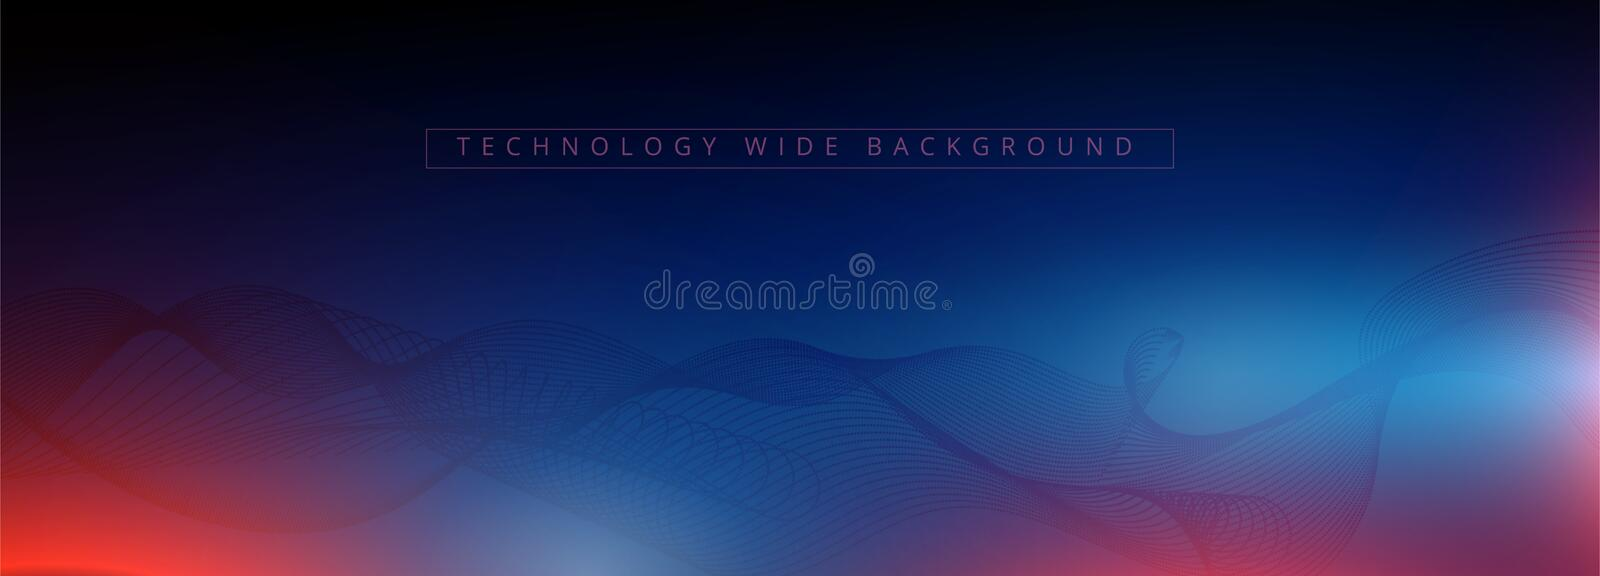 Abstract 3d technology and science neon visualization. Blockchain and cryptocurrency. Digital wallpaper. Business concept. Big dat stock illustration